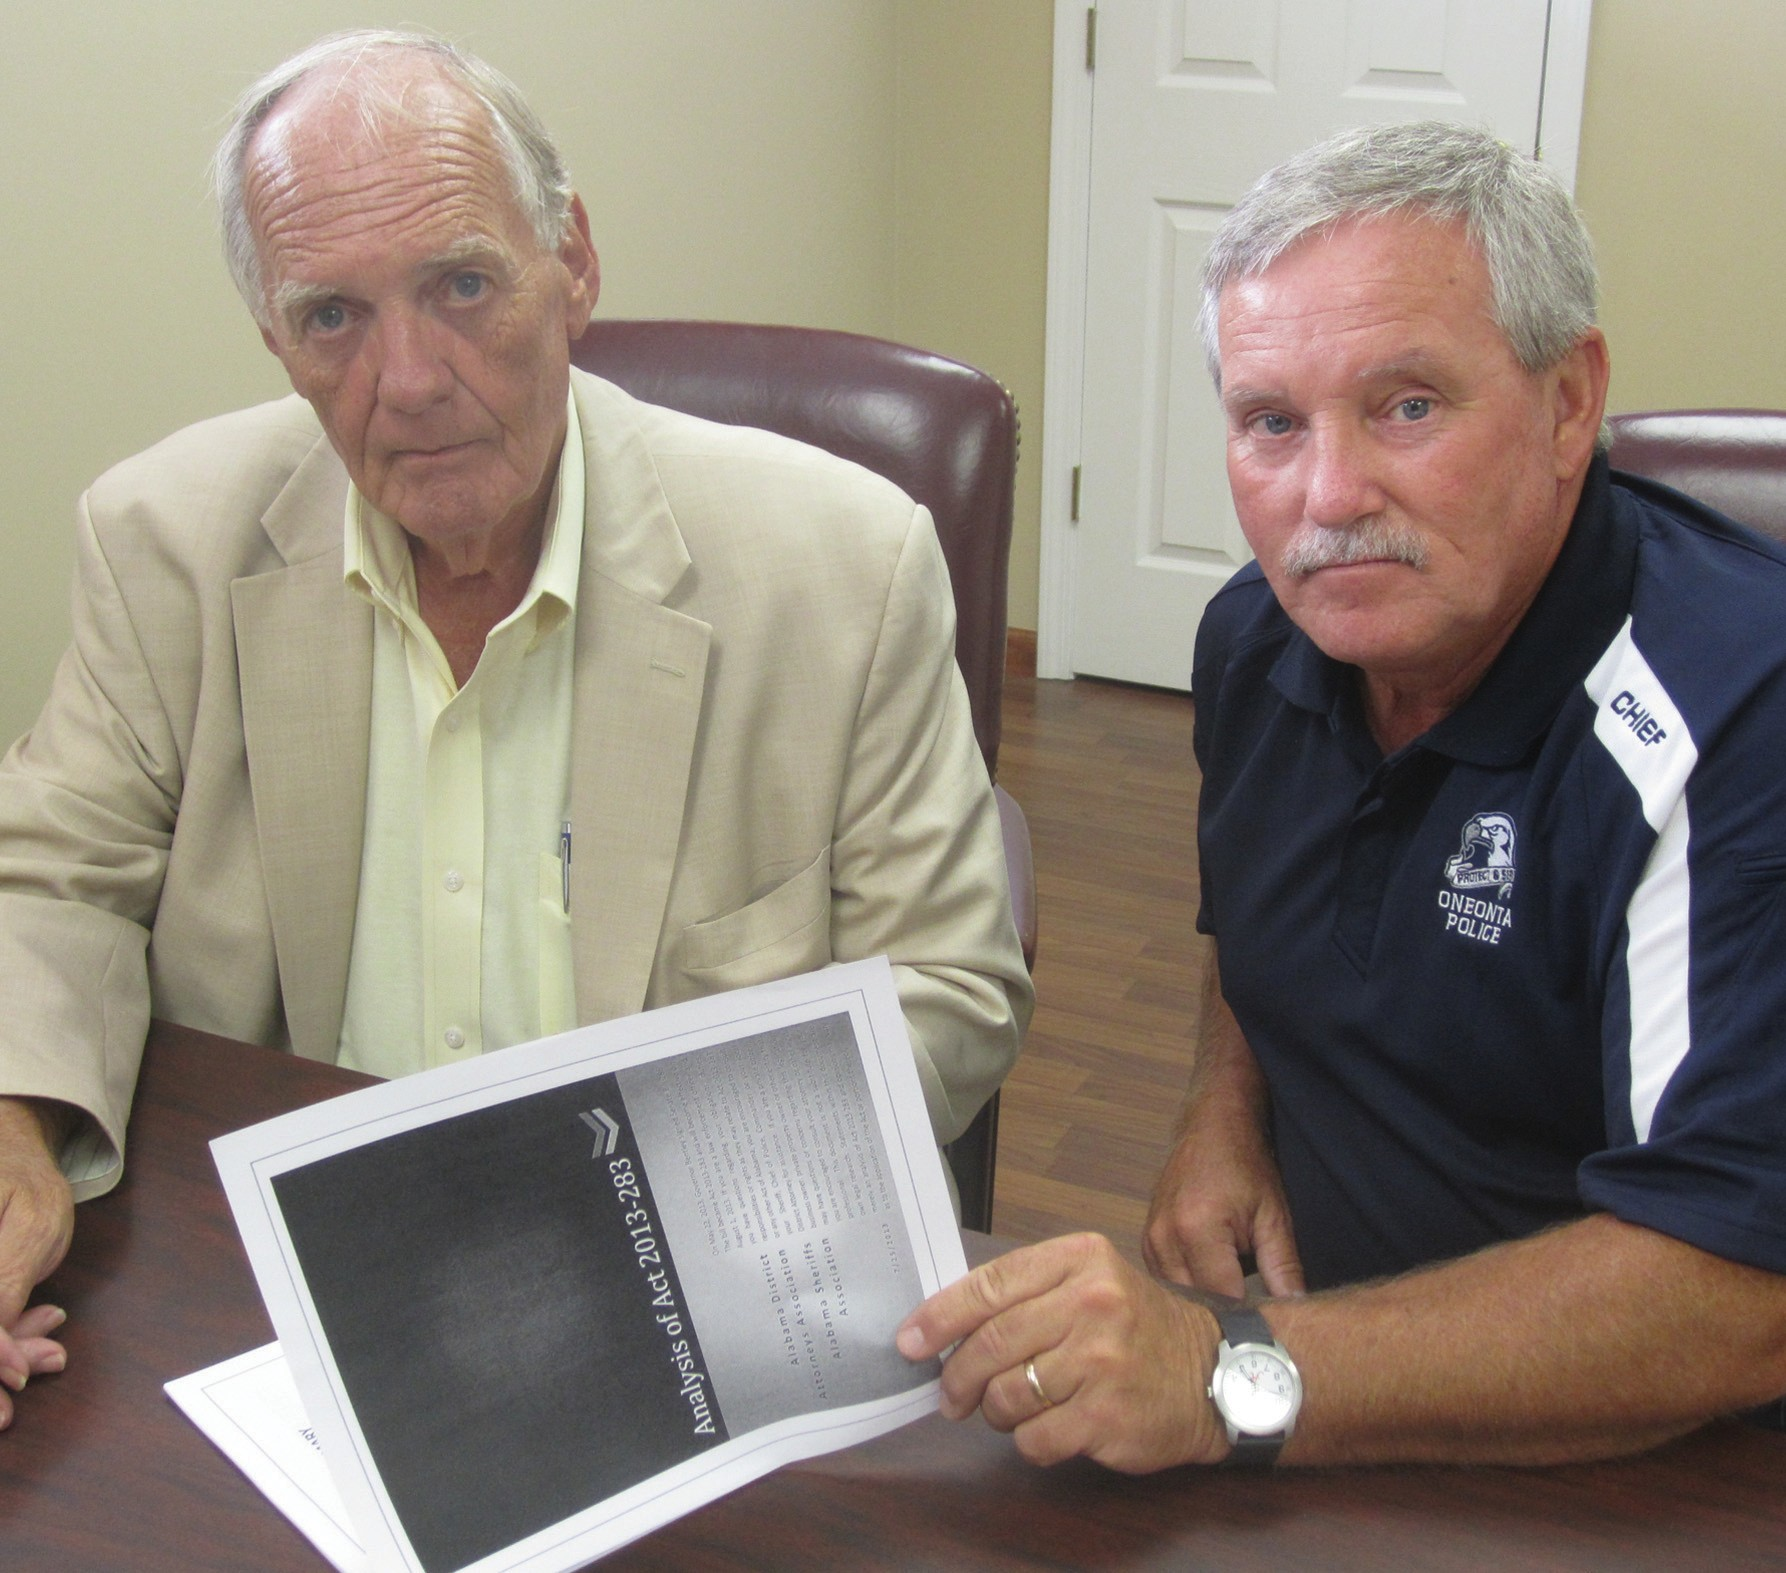 Blount County Sheriff Loyd Arrington and Oneonta Police Chief James Chapman confer over a copy of a conference handout analyzing the impact of Alabama's new Gun Law which went into effect Aug. 1.